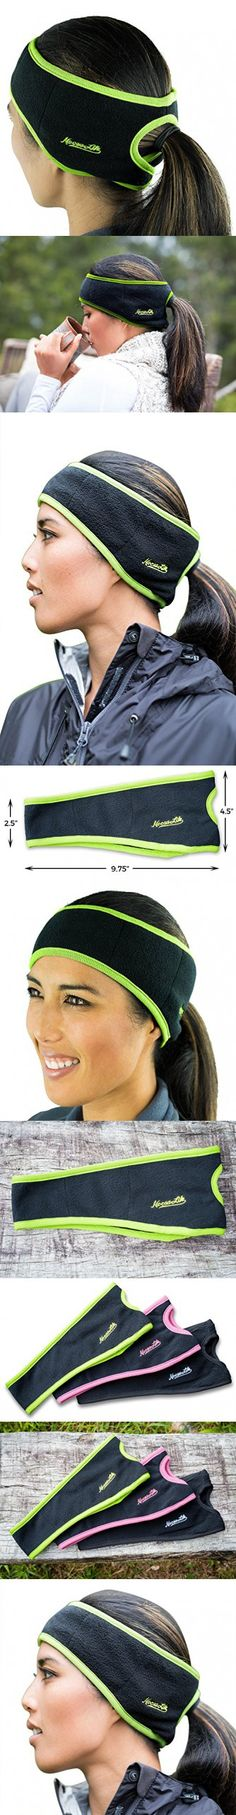 Ponytail Headband | 3 Colors | Warm Fleece for Outdoor Sports and Fitness | Ear Warmer & Sweatband | Super Sweat Absorbent | Perfect for Running or Yoga